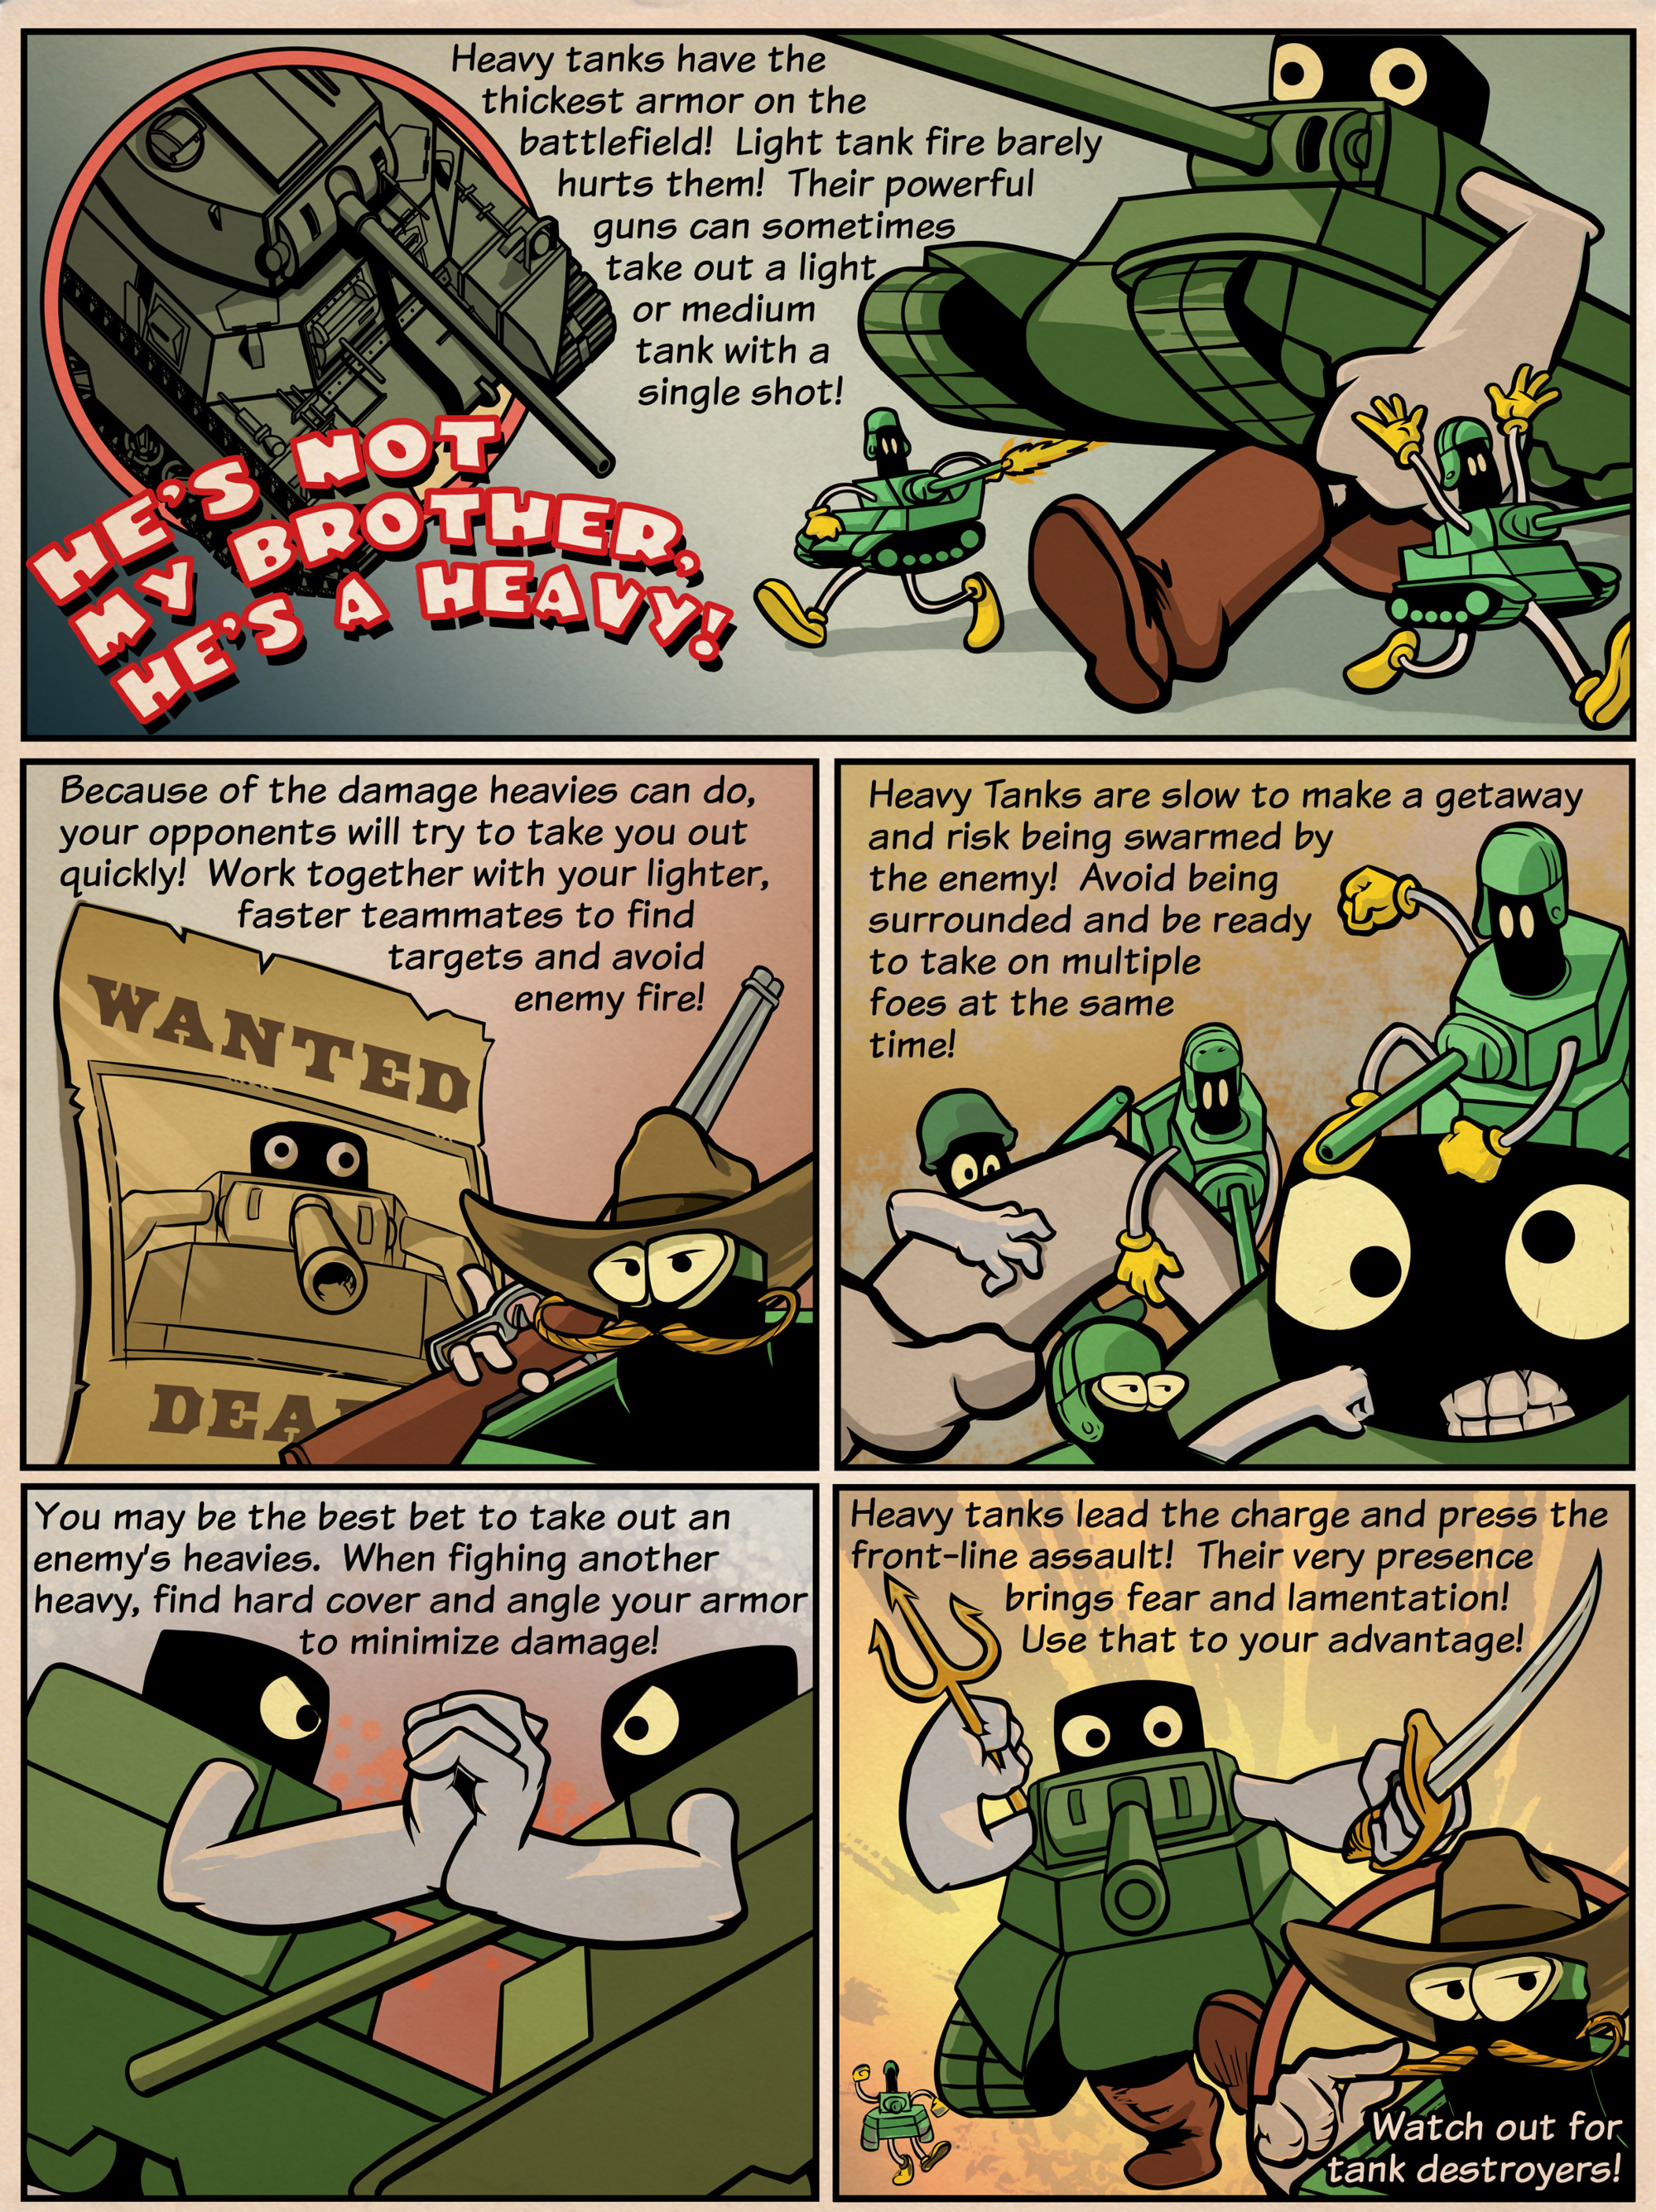 Steam Community :: Guide :: An Illustrated Guide to Heavy Tanks